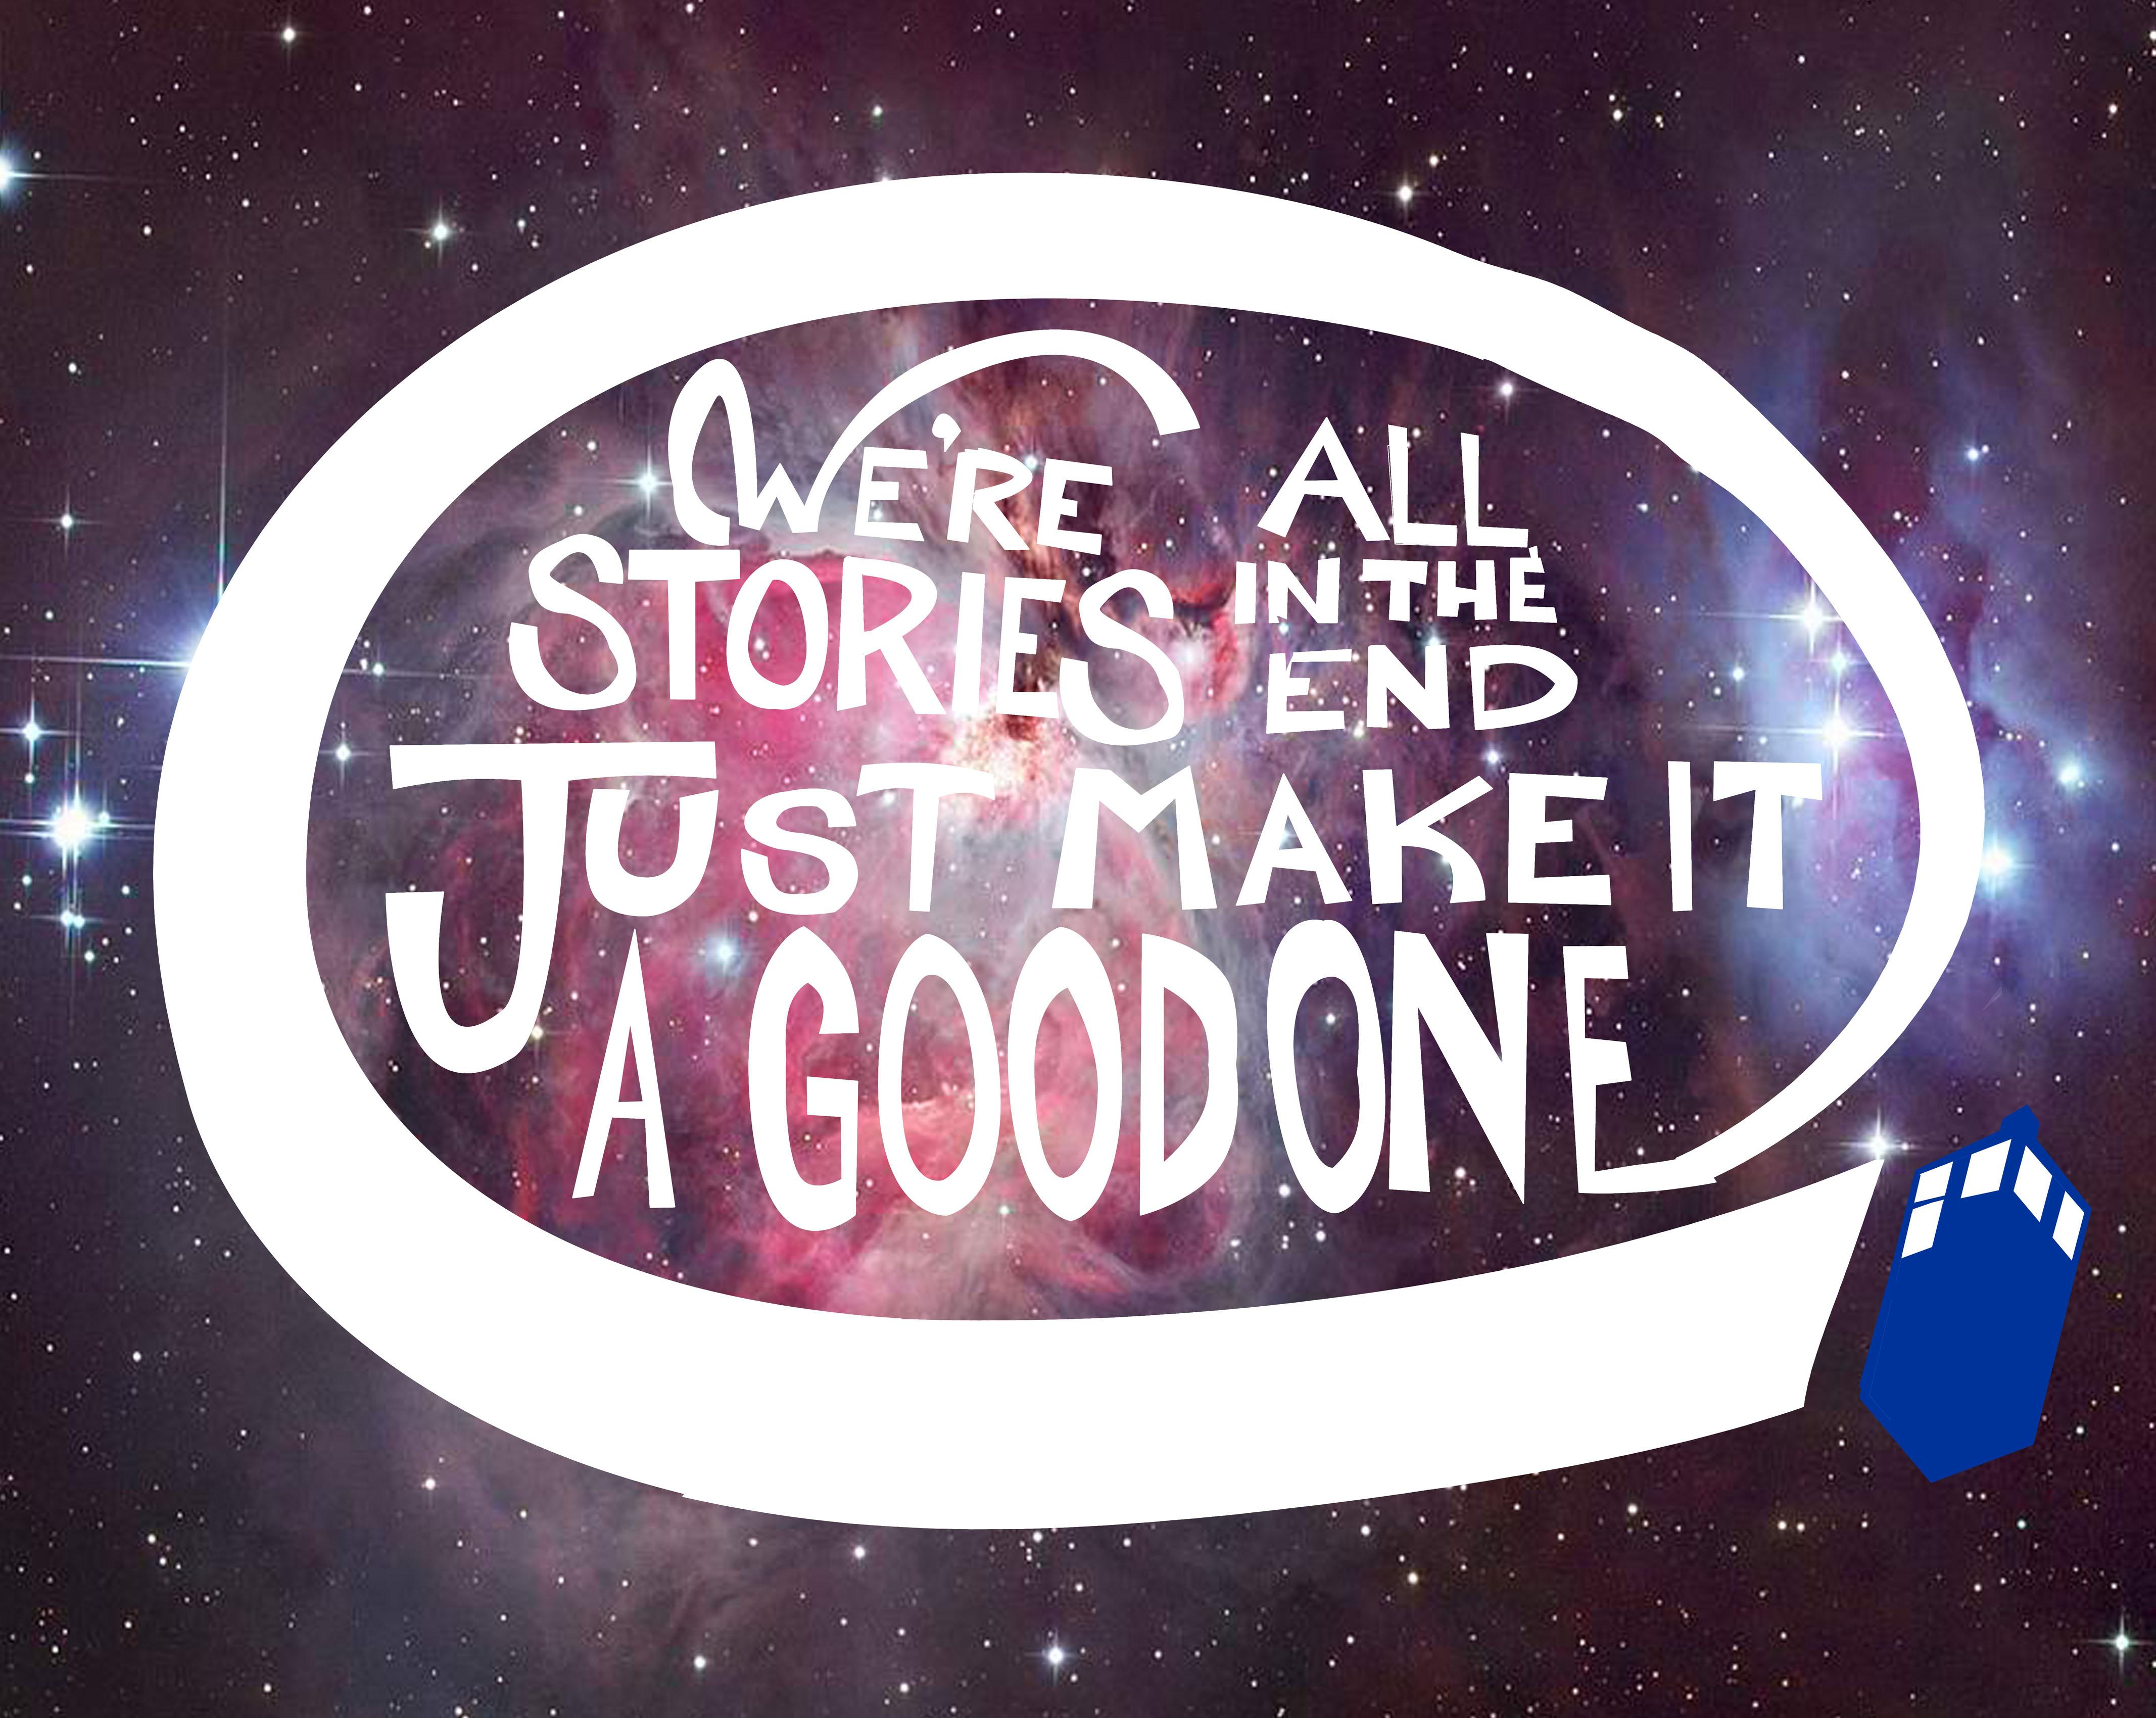 We're all stories in the end. Make it a good one eh? - image 9 - student project